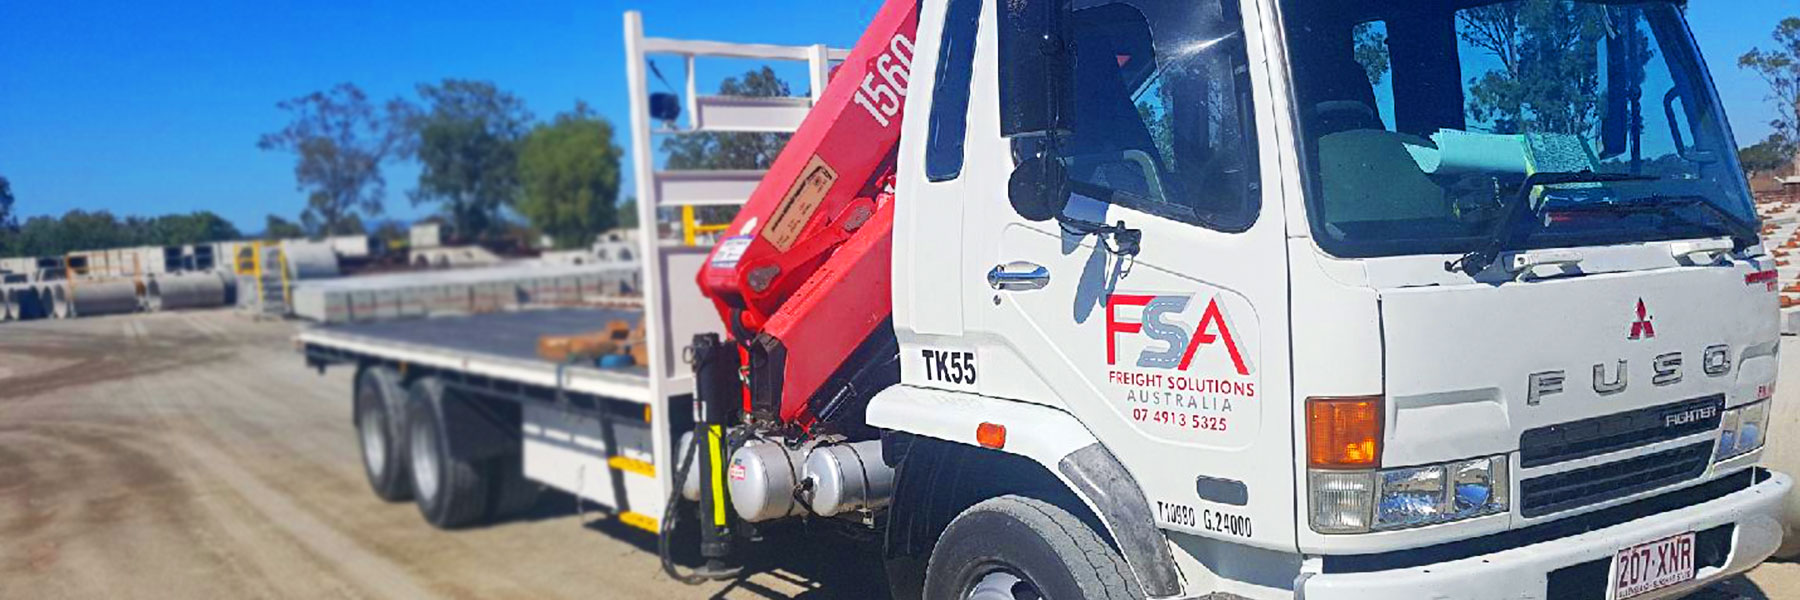 Freight Solution Australia crane truck 3